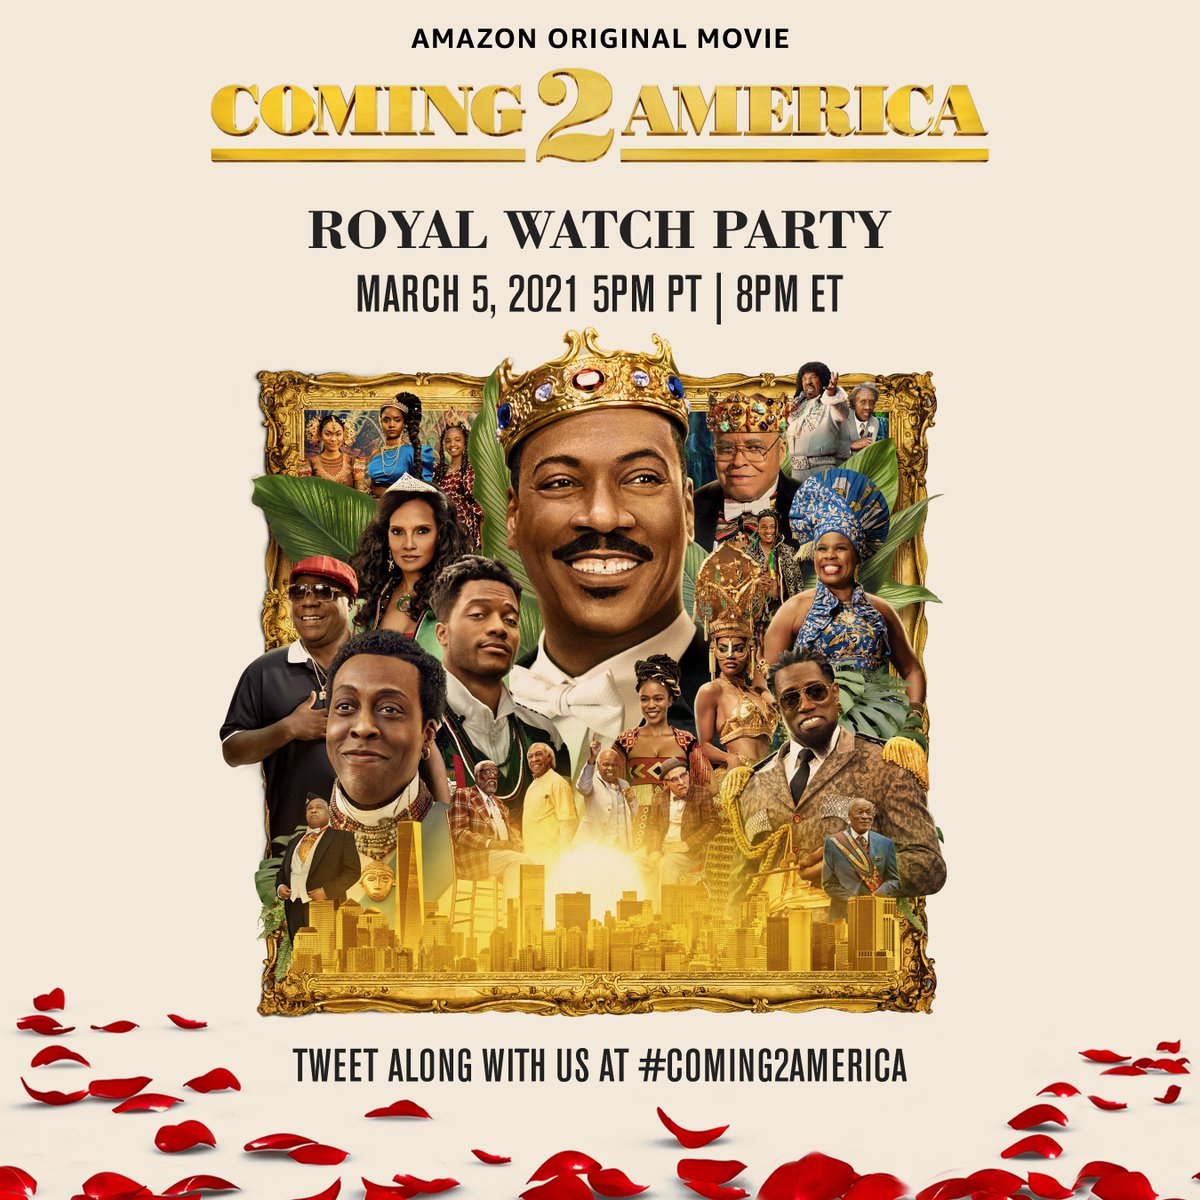 t's finally here 🙌  Coming 2 America is on @primevideo and tonight we're watching as a Royal Family! Use #Coming2America and tweet along as you watch starting at 5pm PT/8pm ET.